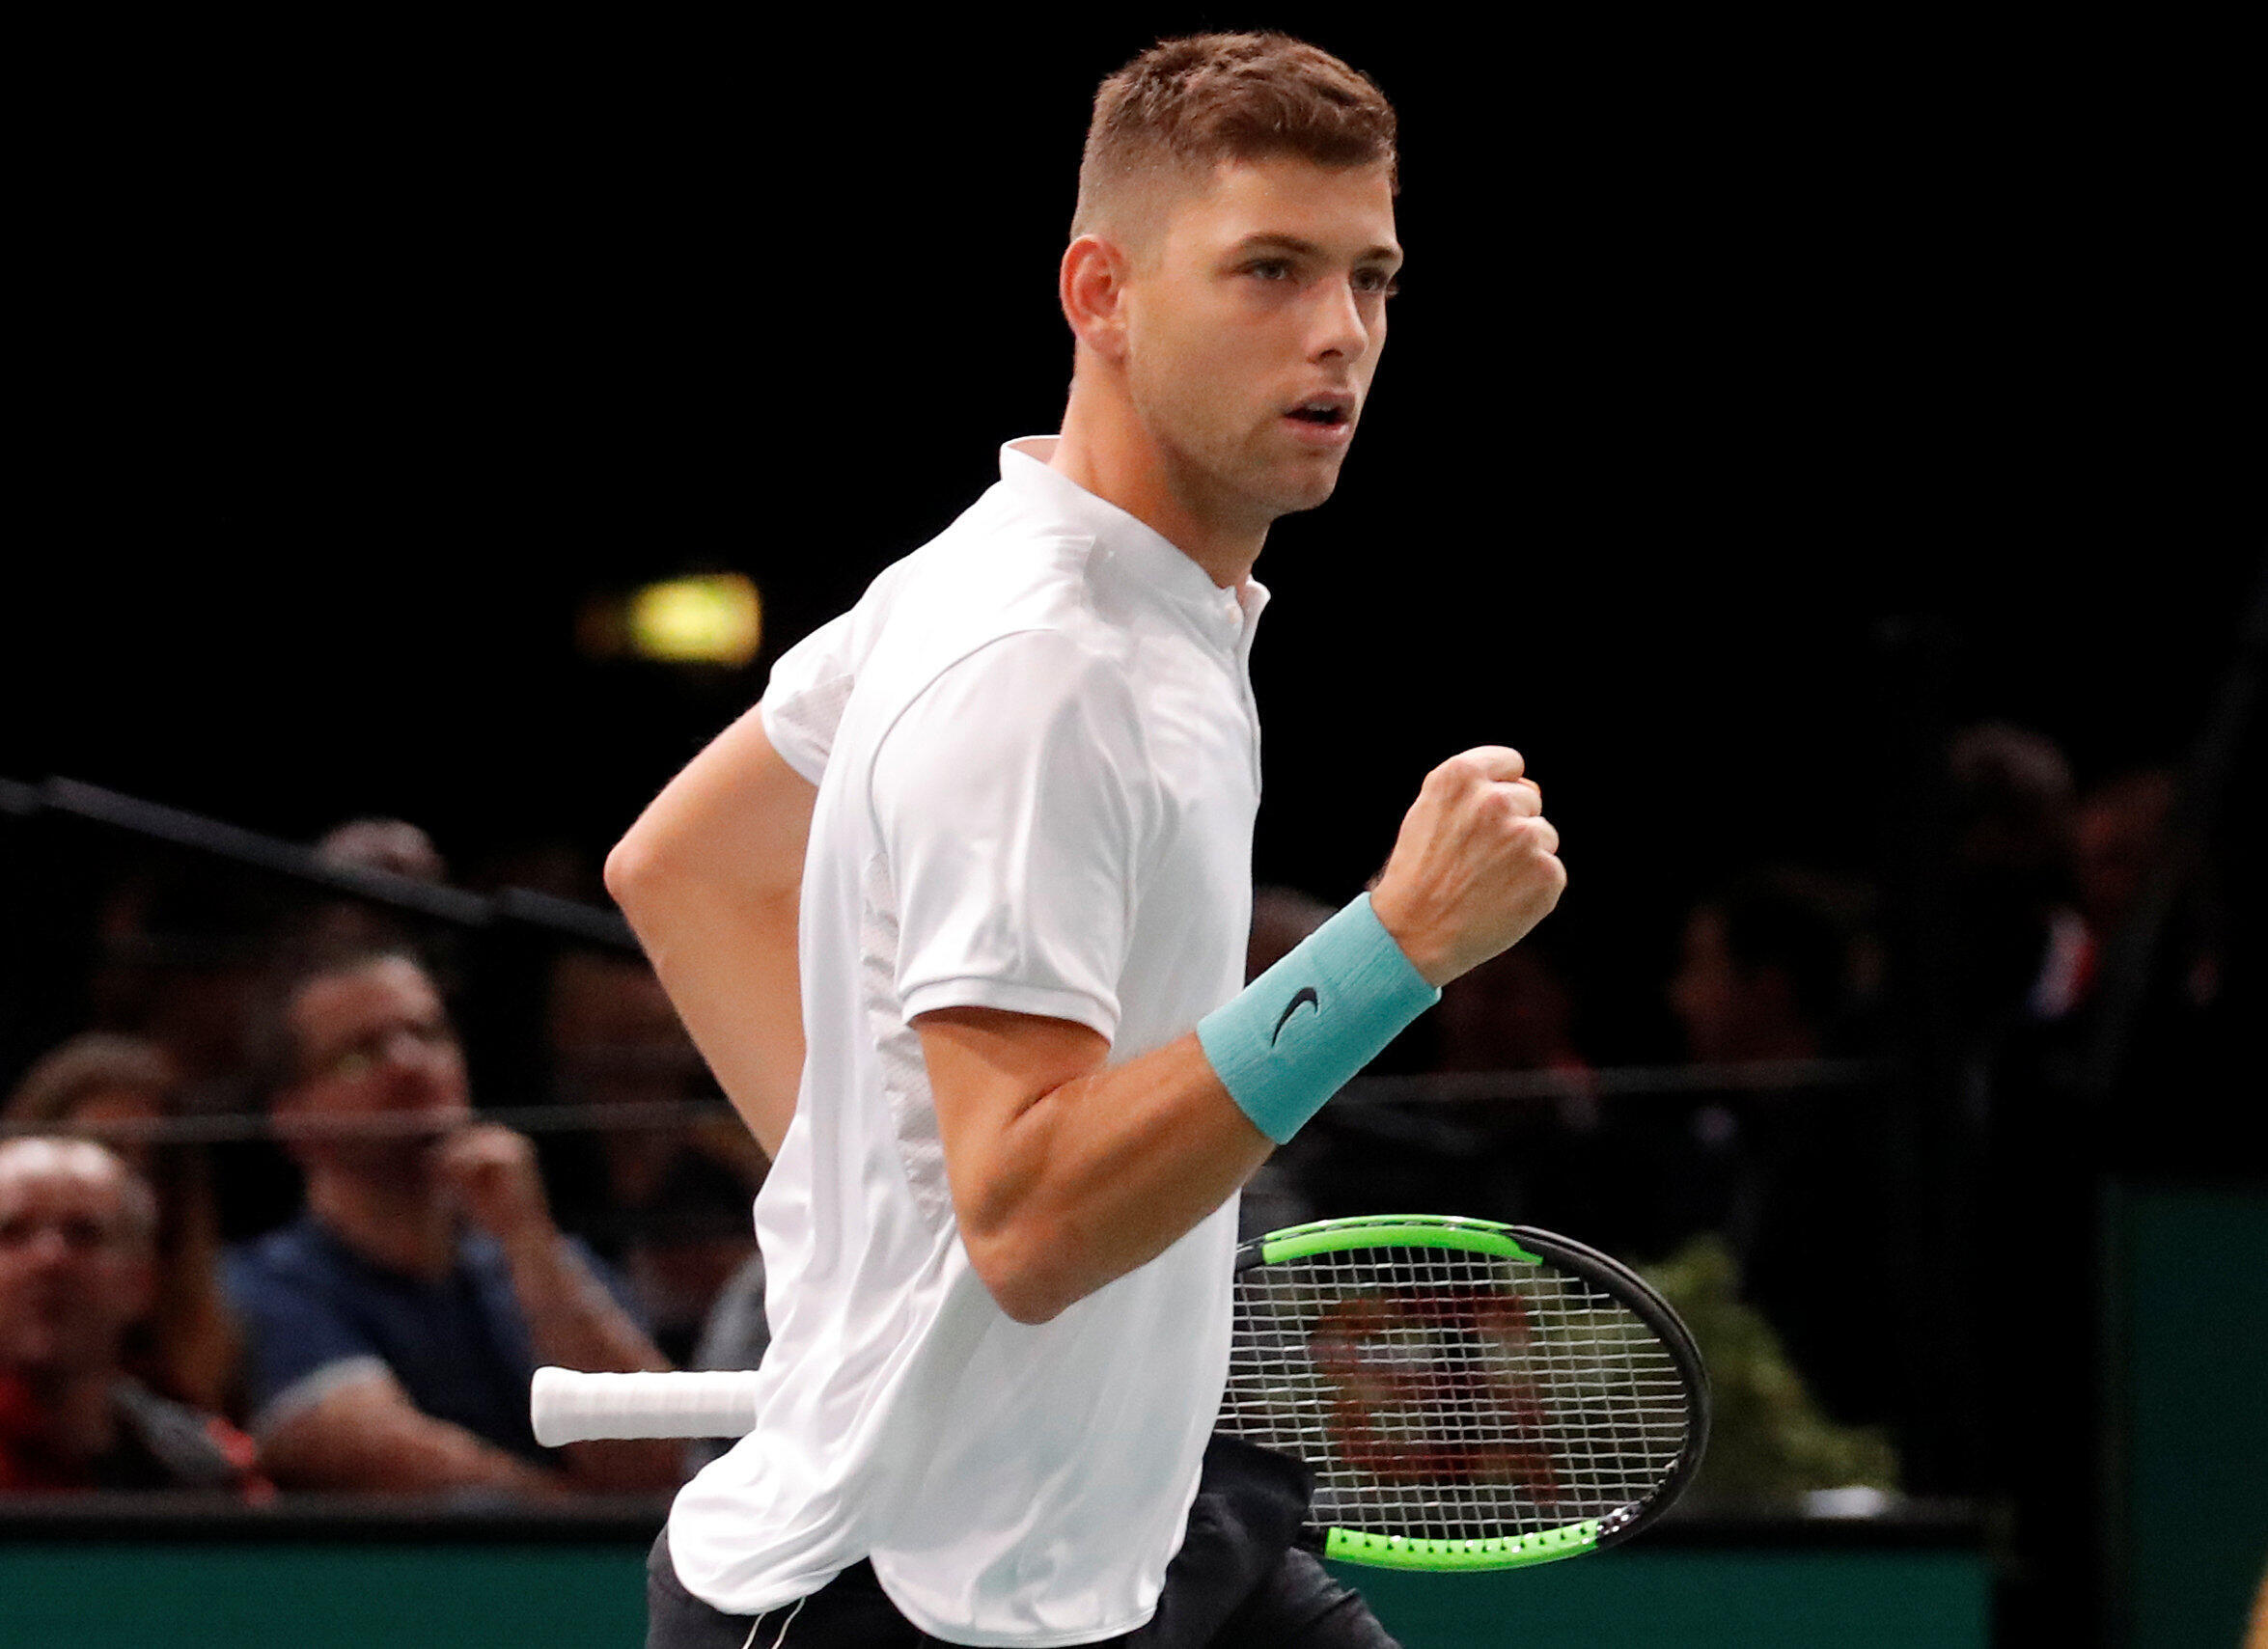 Filip Krajinovic came through two rounds of qualifying to reach the final at the Paris Masters.